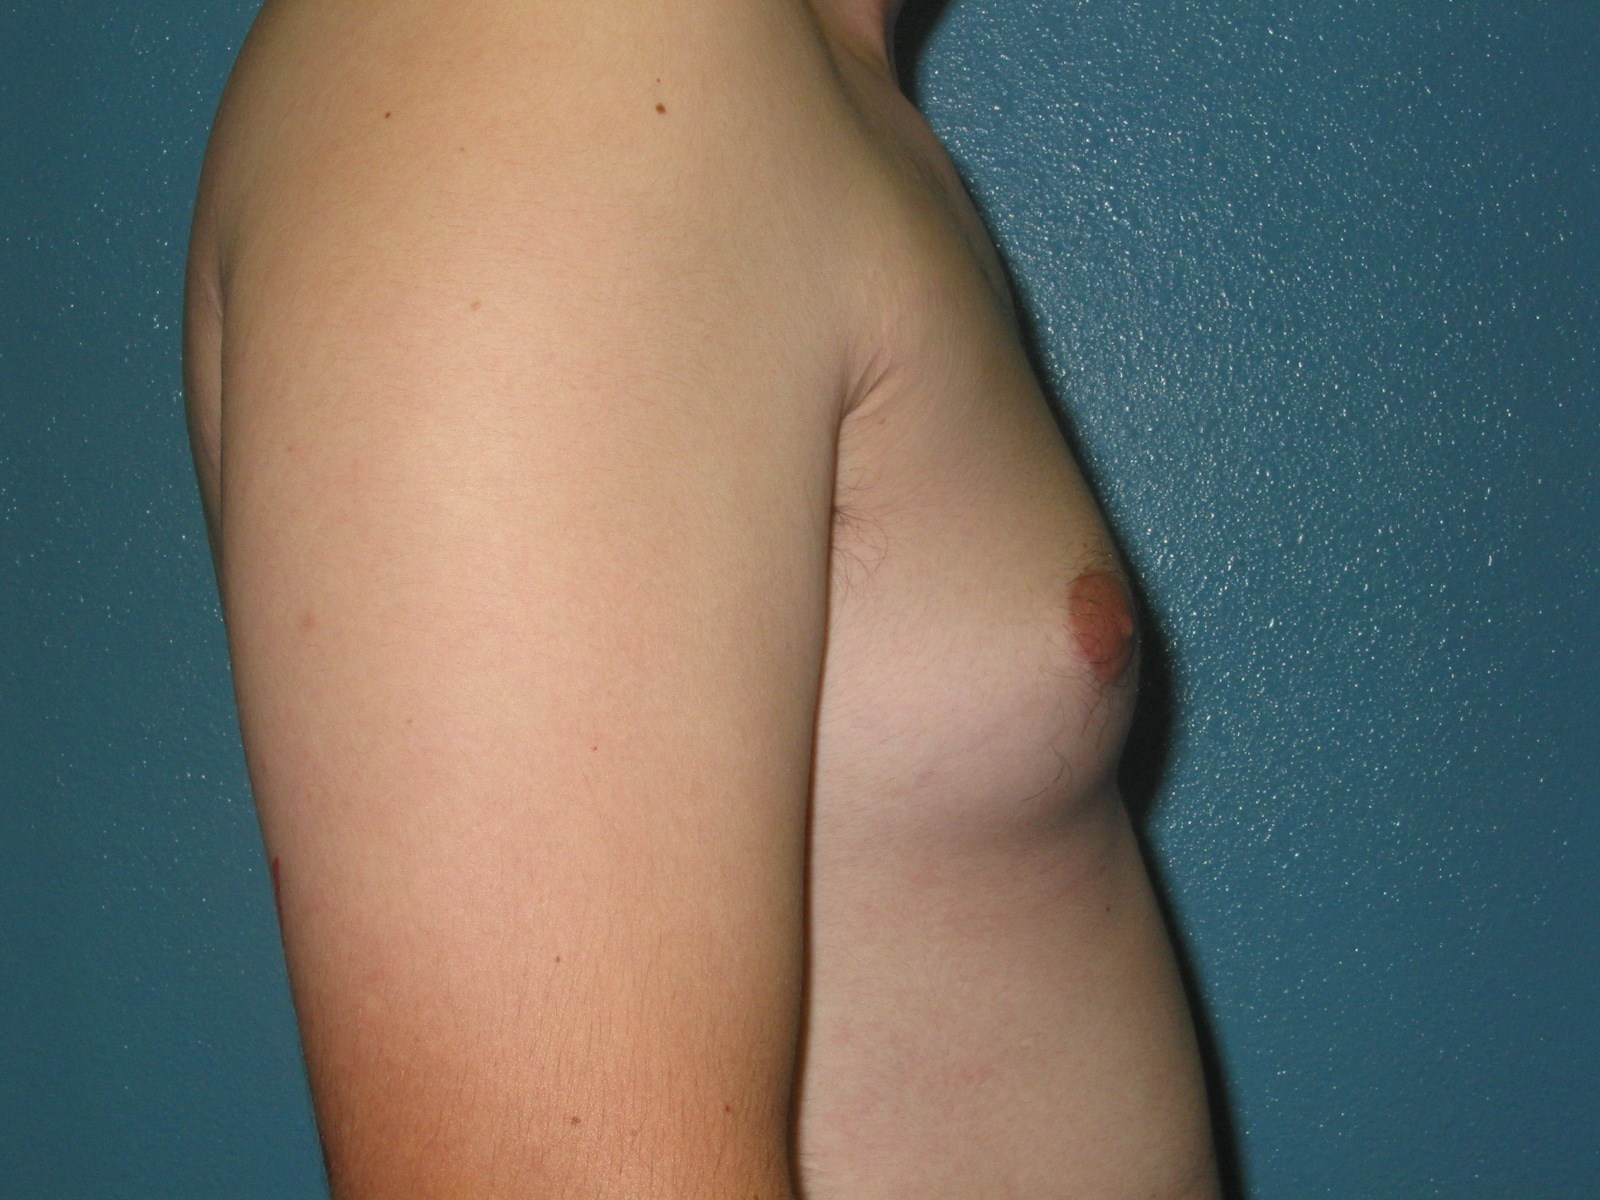 young-girl-breast-delvopment-mitos-sexuales